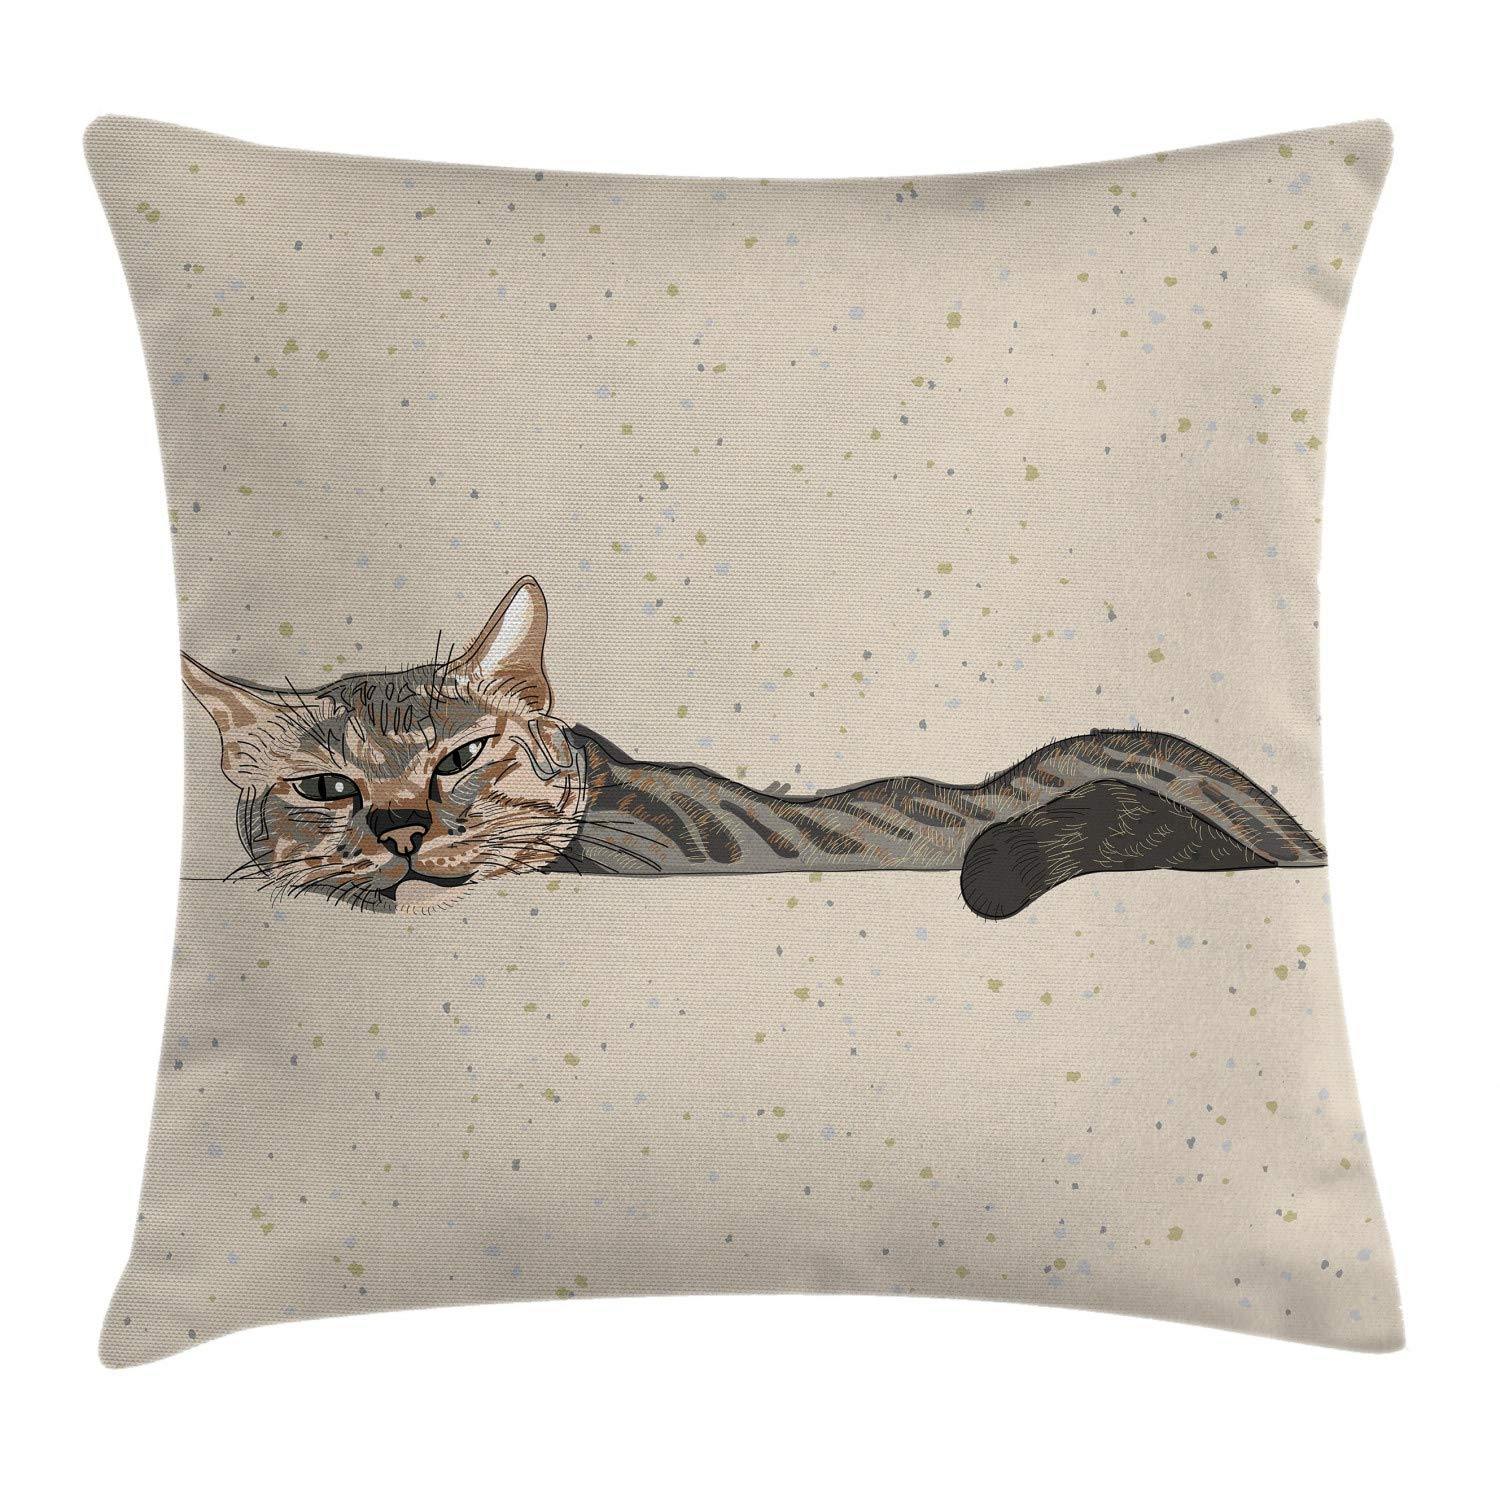 Ambesonne Cat Throw Pillow Cushion Cover, Lazy Sleepy Cat in Earth Tones Furry Mascot Indoor Pet Art Illustration, Decorative Square Accent Pillow Case, 18'' X 18'', Tan Dimgrey by Ambesonne